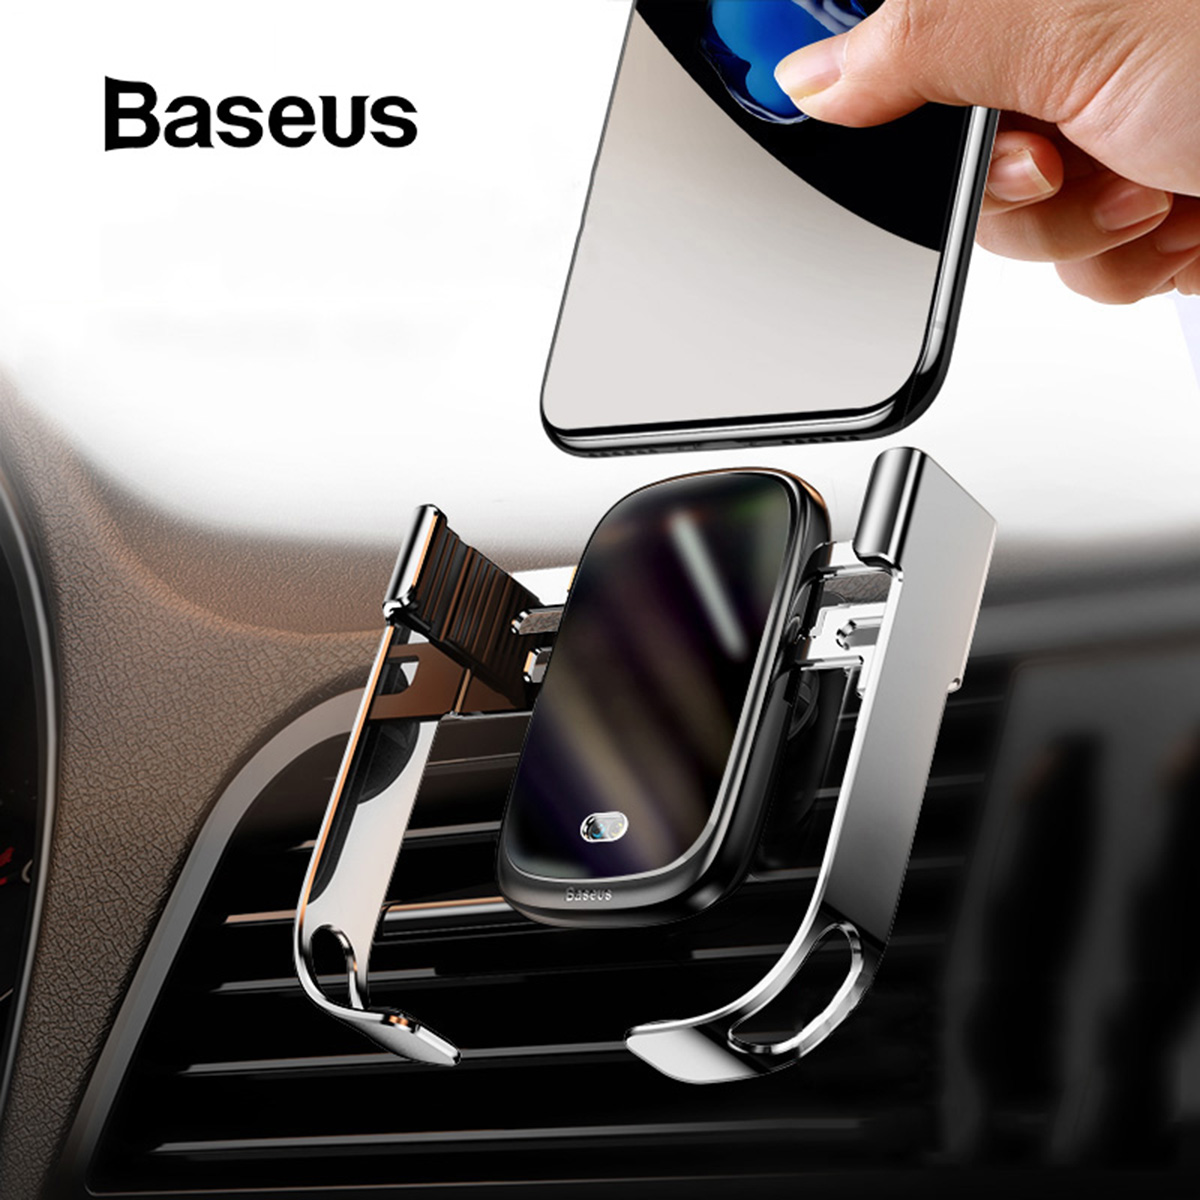 <font><b>Baseus</b></font> Intelligent Infrared Qi Wireless <font><b>Charger</b></font> For iPhone <font><b>Car</b></font> Air Vent Holder <font><b>Charger</b></font> 10W Fast Charging for iPhone 11 Pro XS image